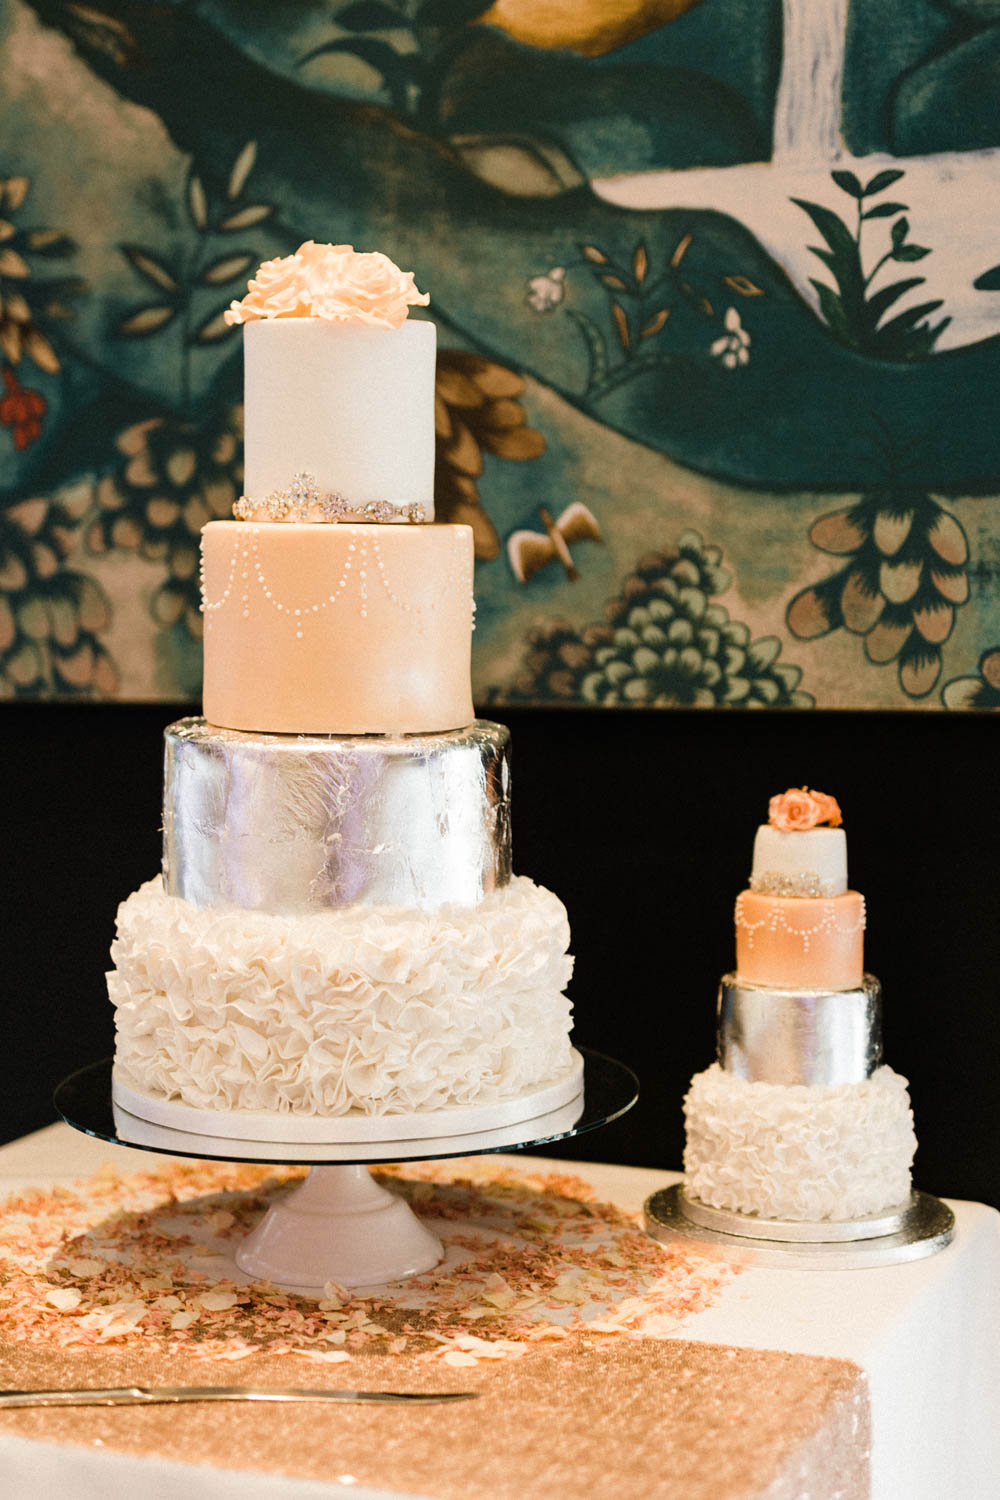 Special-Day-Photography-The-Manor-House-Hotel-Moreton-in-Marsh-Moreton-In-Marsh-Summer-Wedding-Two-wedding-cakes.jpg